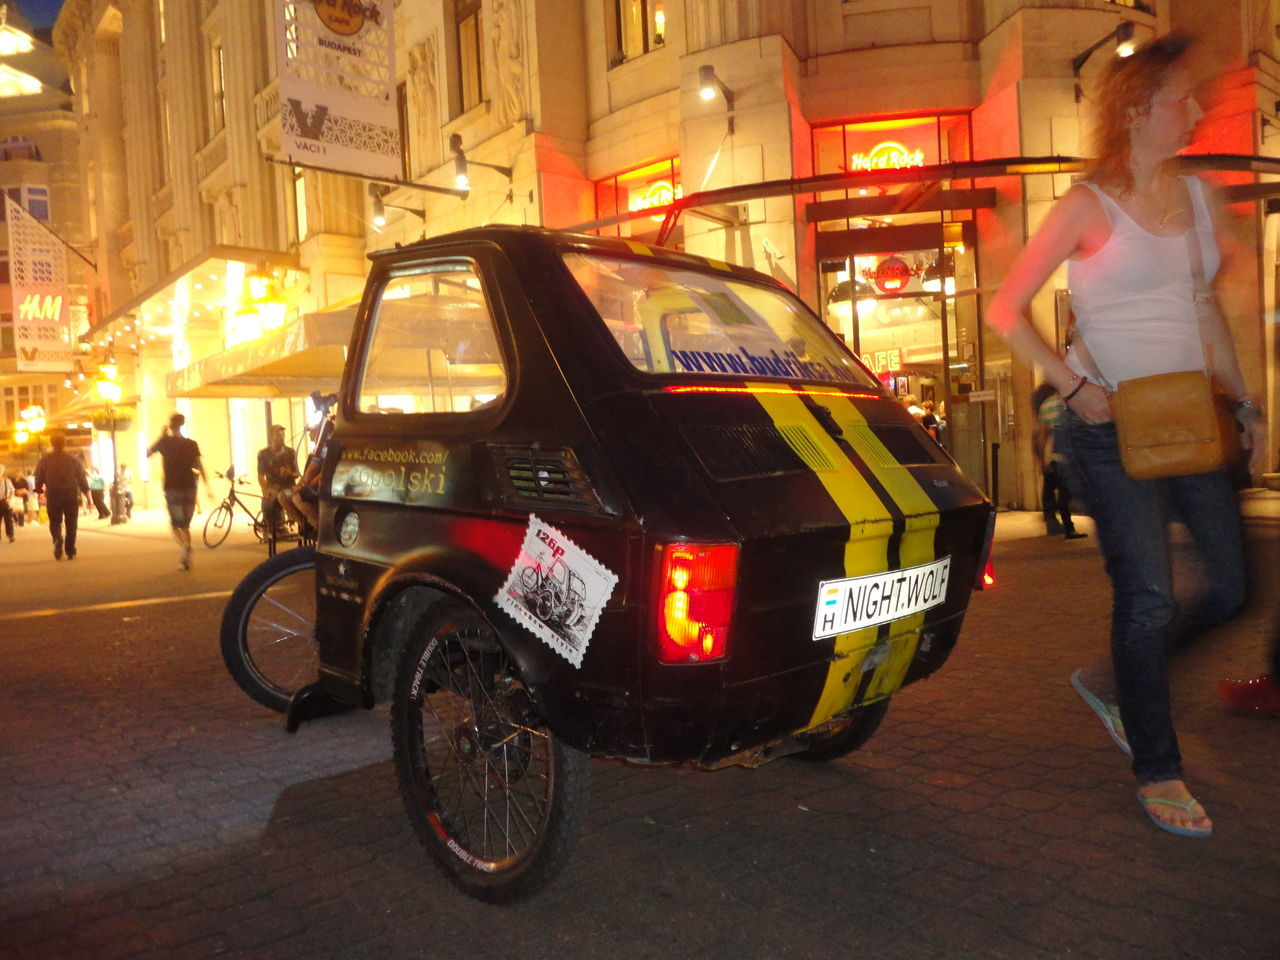 Car Bike Traveling Home For The Holidays Street Transportation Taxi Motoindustrybusiness Motor Vehicle